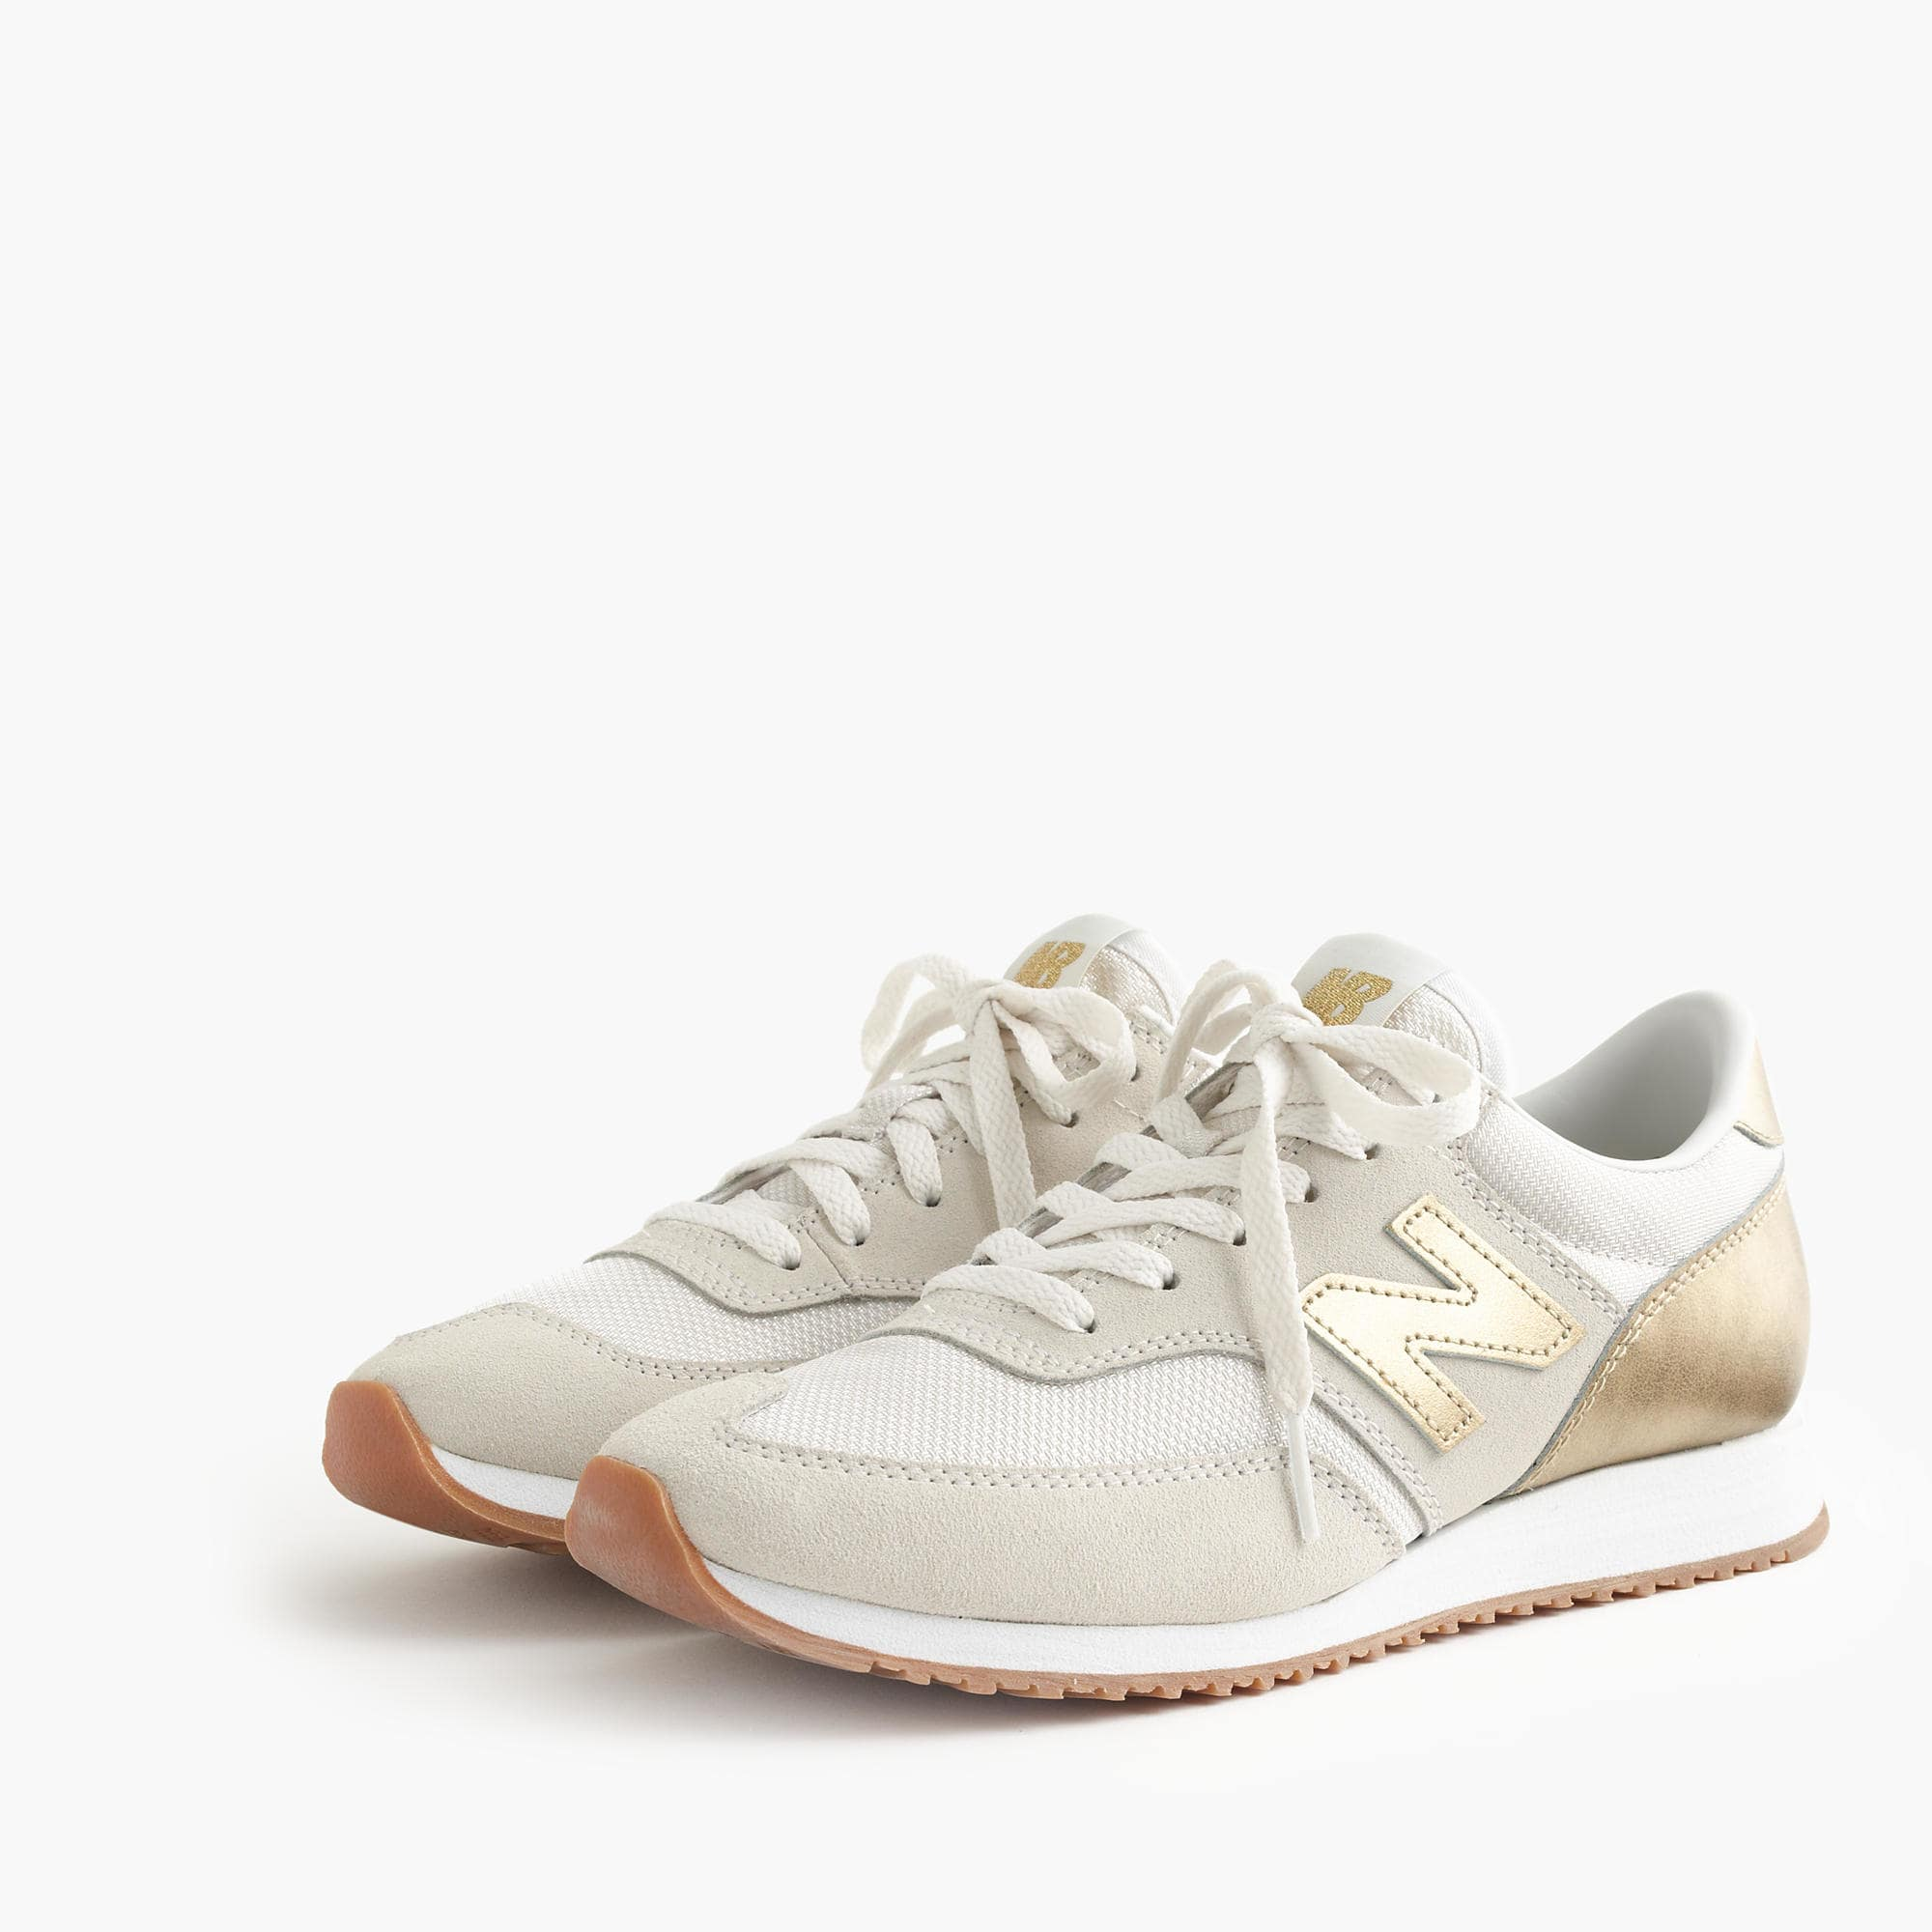 new balance womens shoes ... womenu0027s new balanceu0026reg; for j.crew 620 sneakers ... YPRBISC